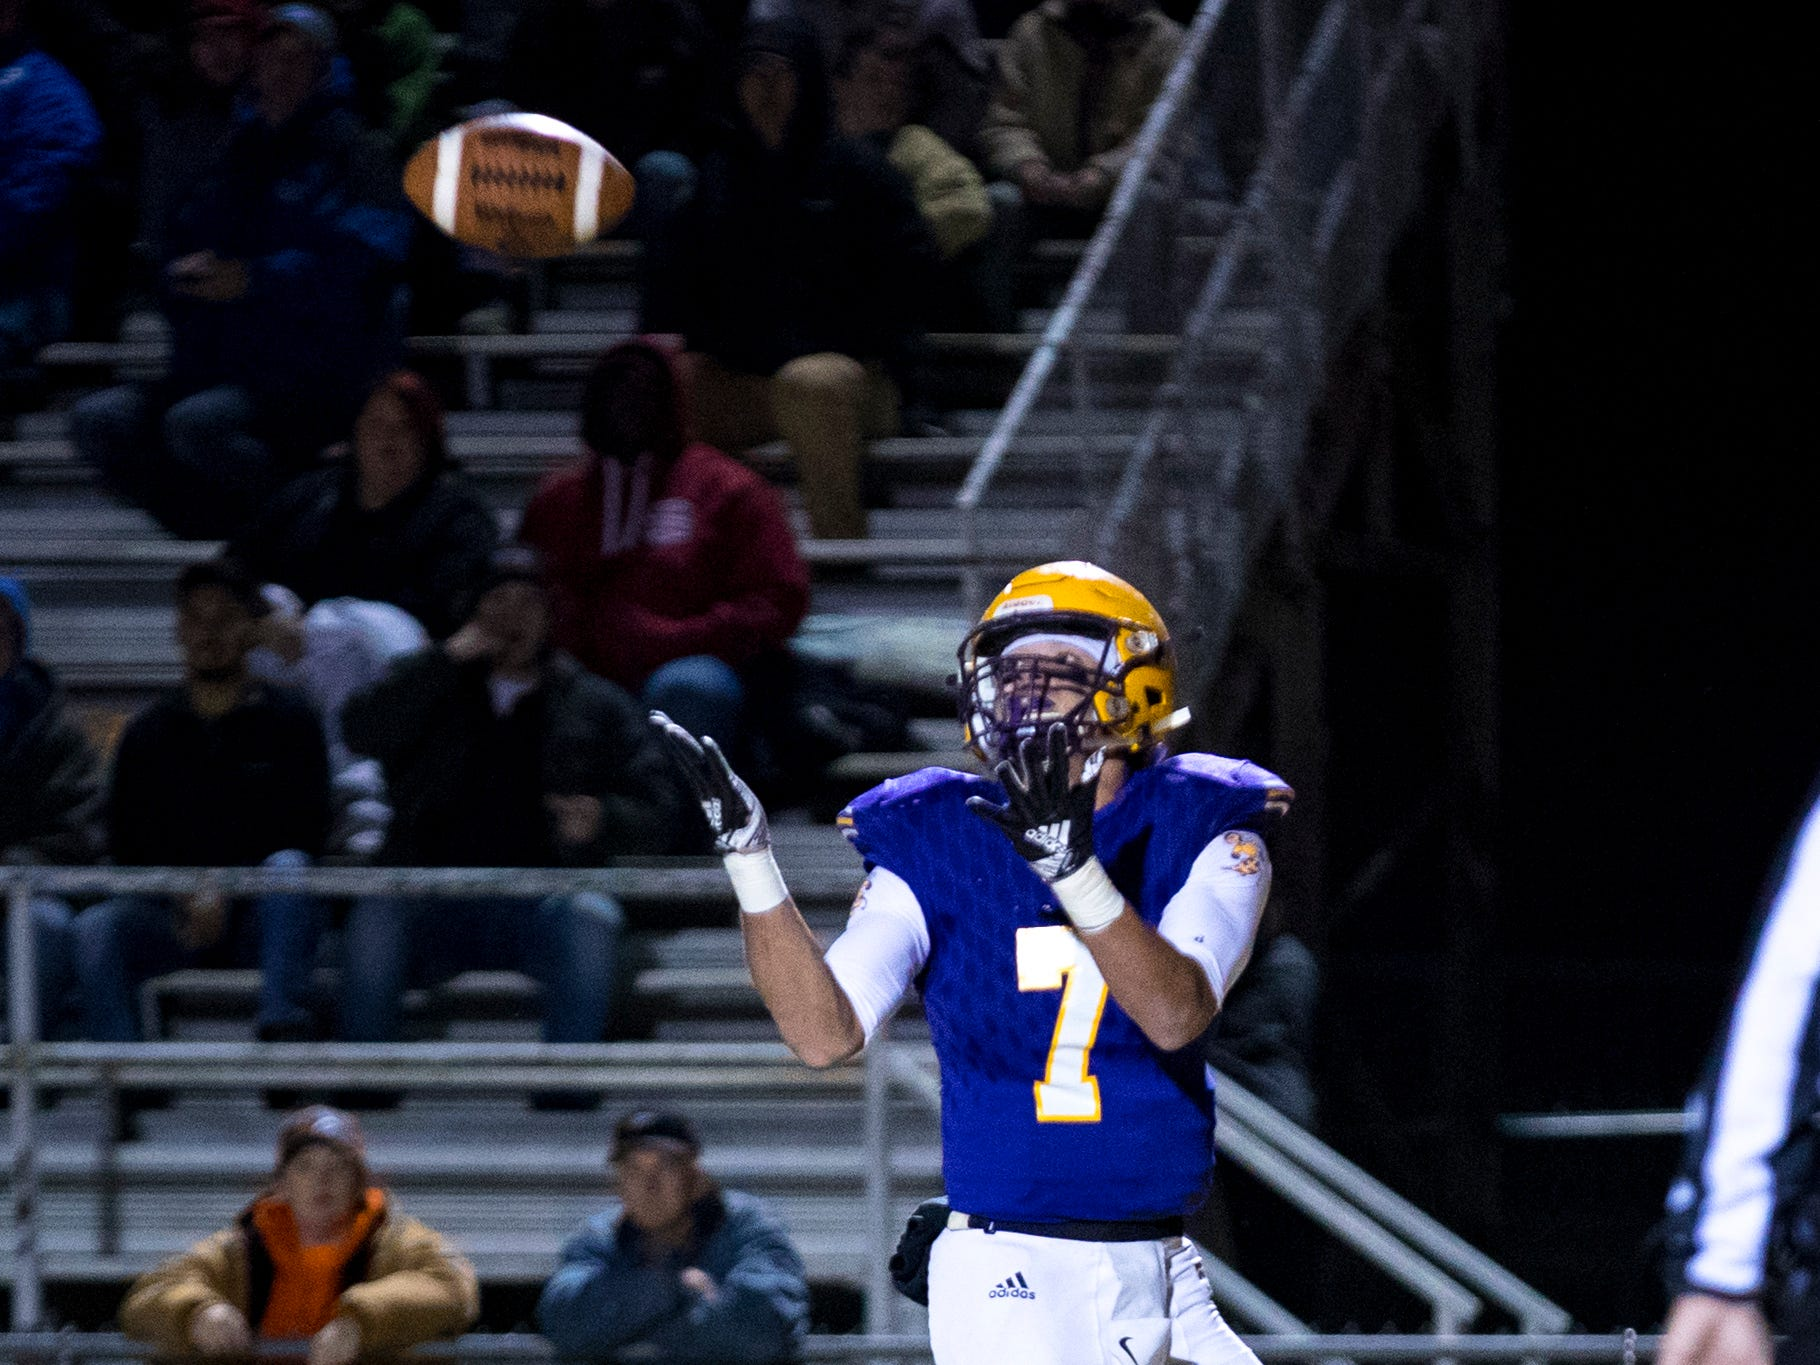 Trousdale County's Tarvaris Claiborne (7) catches a pass for a touchdown during Trousdale County's game against Meigs County at Jim Satterfield Stadium in Hartsville on Friday, Nov. 23, 2018.